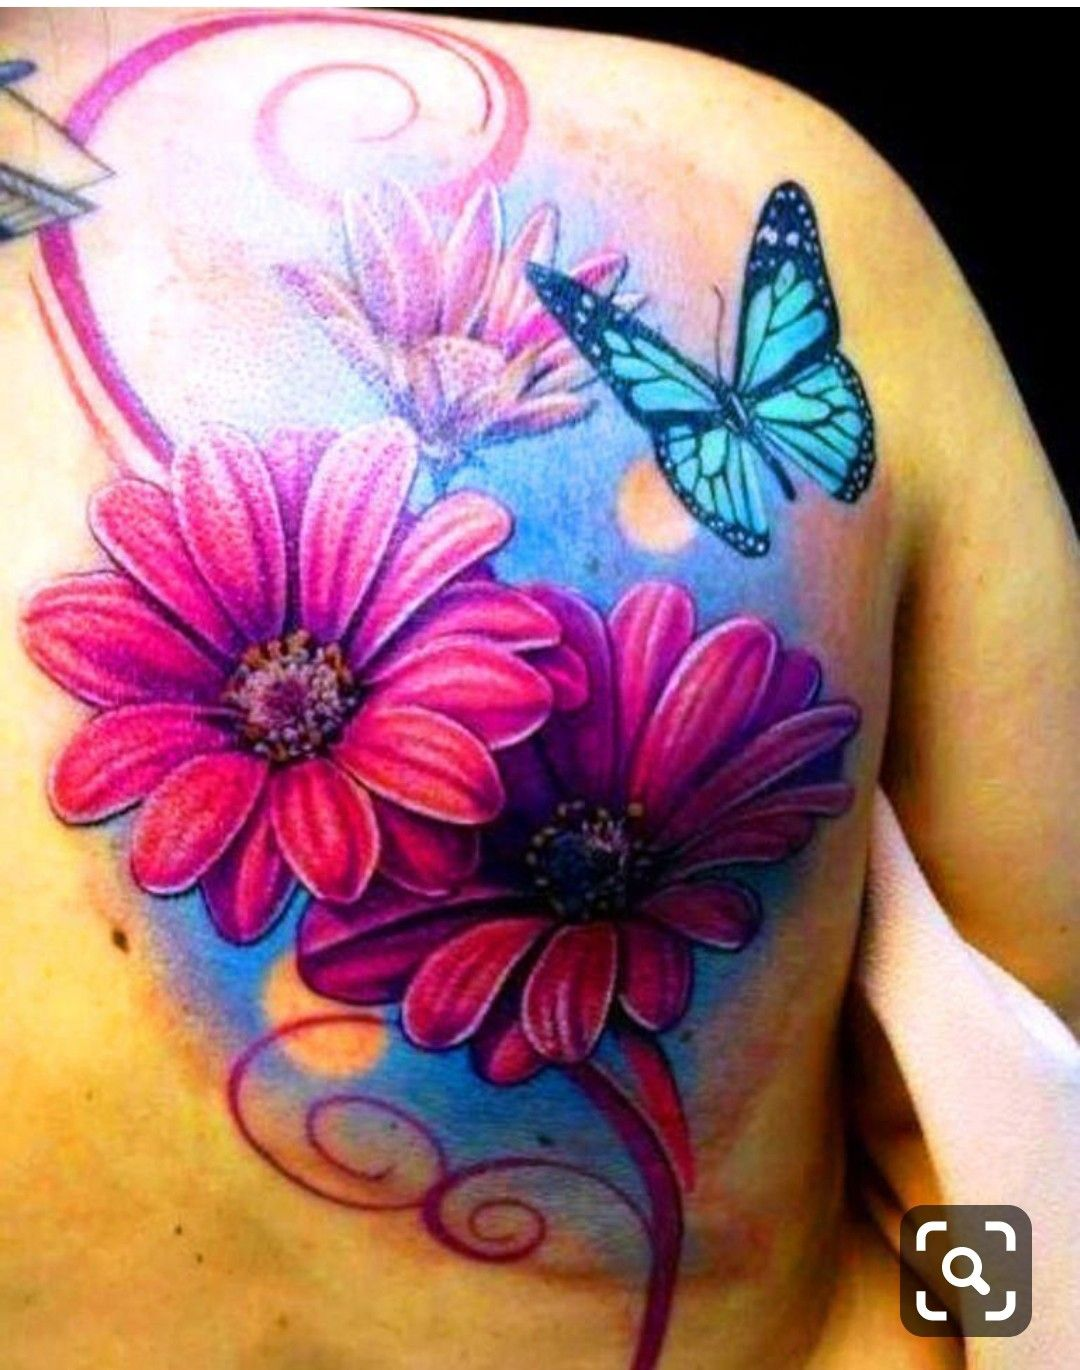 Pin By Ross Realties Of Fathom Realty On Tattoos Daisy Flower Tattoos Flower Tattoo Back Daisy Tattoo